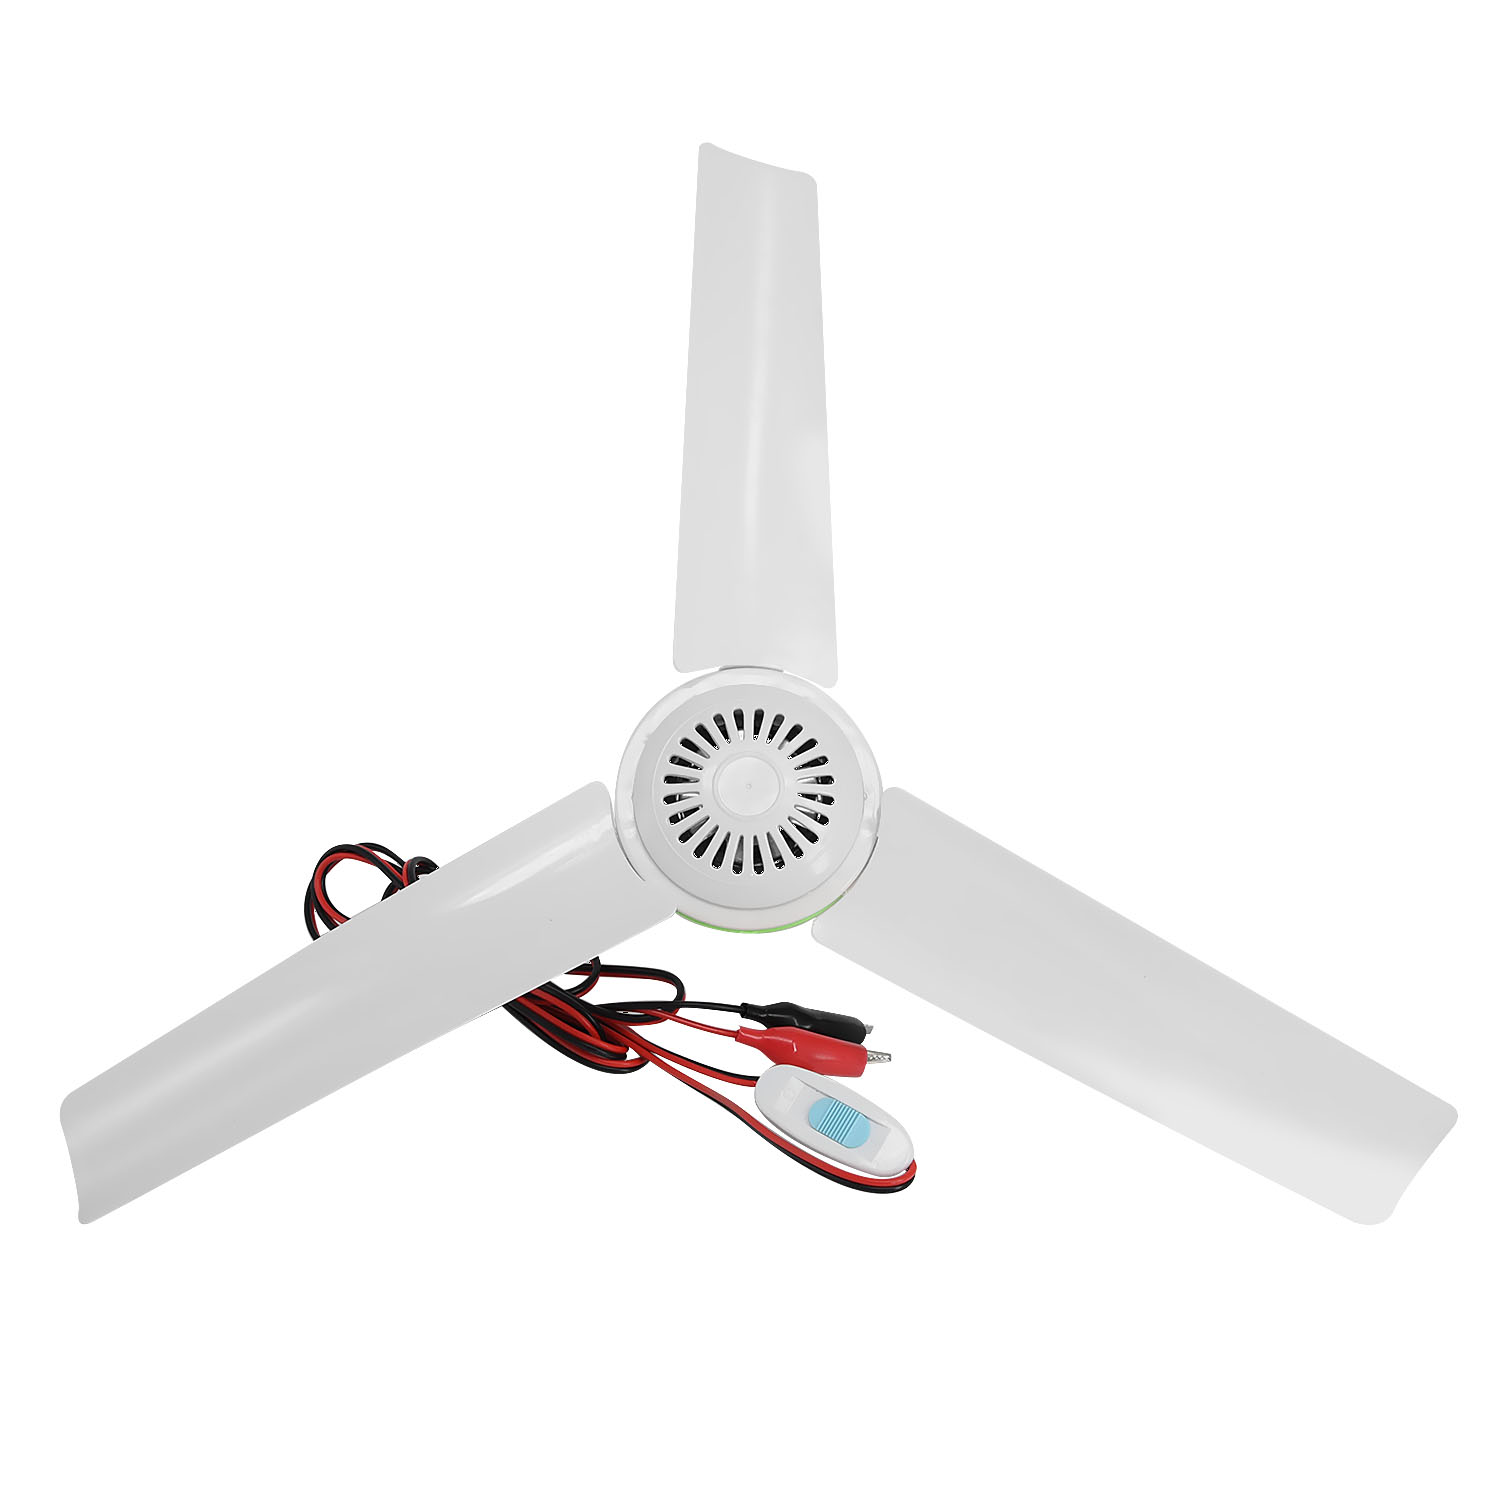 Portable Ceiling Fan 3 Blades Hanging Outdoor 6W For Solar Power Caravan Camping Easy Hang